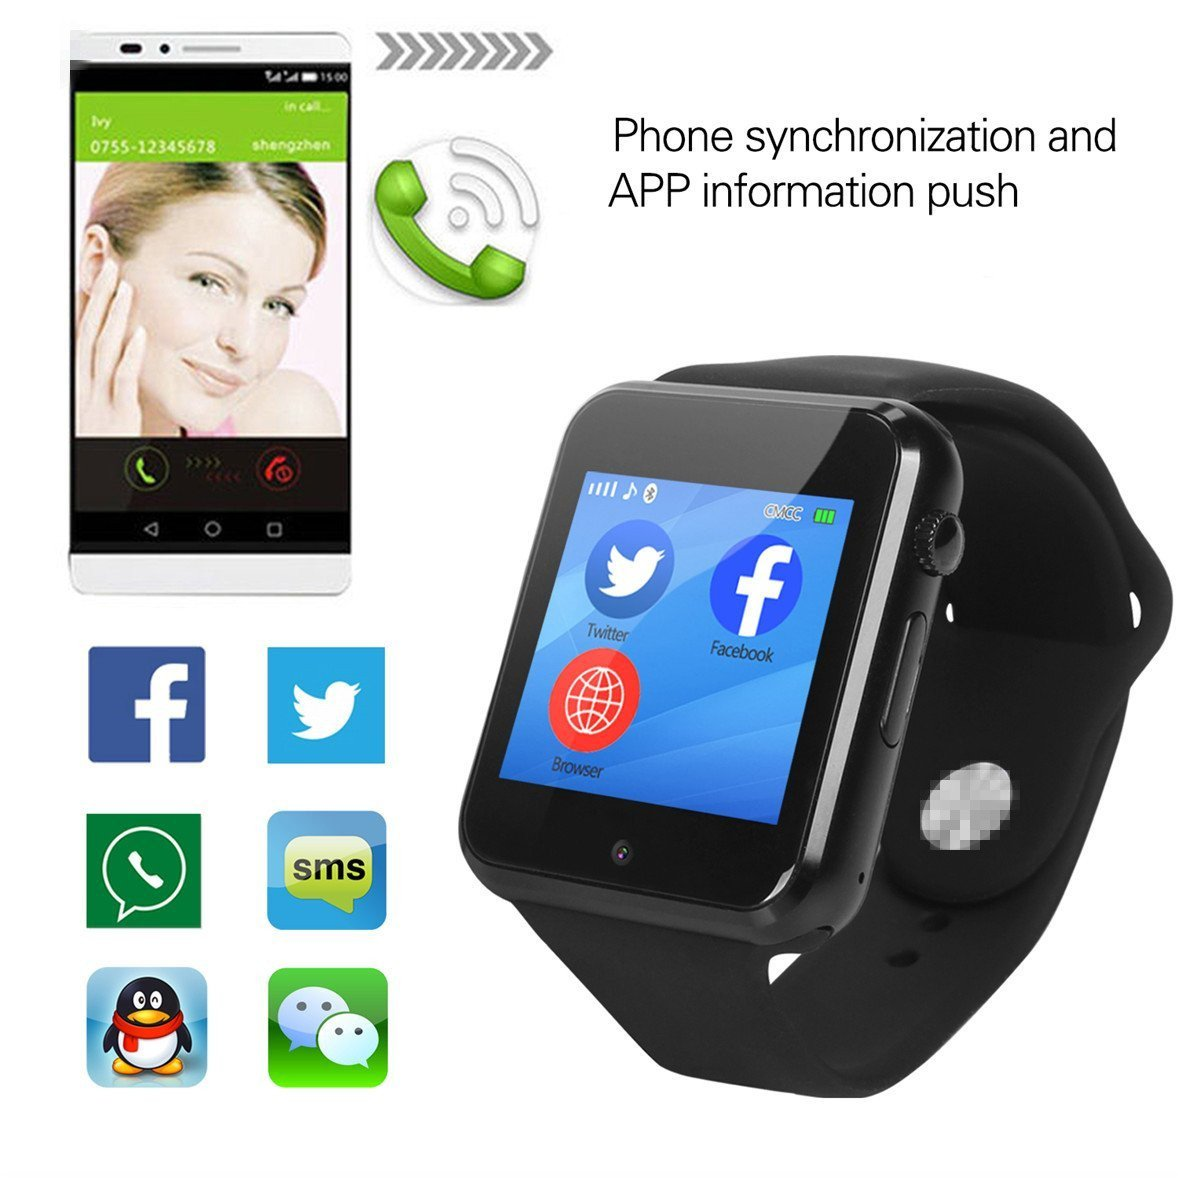 Smart Watch,OURSPOP G1 Bluetooth Touch Screen SmartWatch Unlock Cell Phone SIM 2G GSM With Camera Sleep Monitor,Push Message,Anti lost etc for Men Women Kids Boys Girls